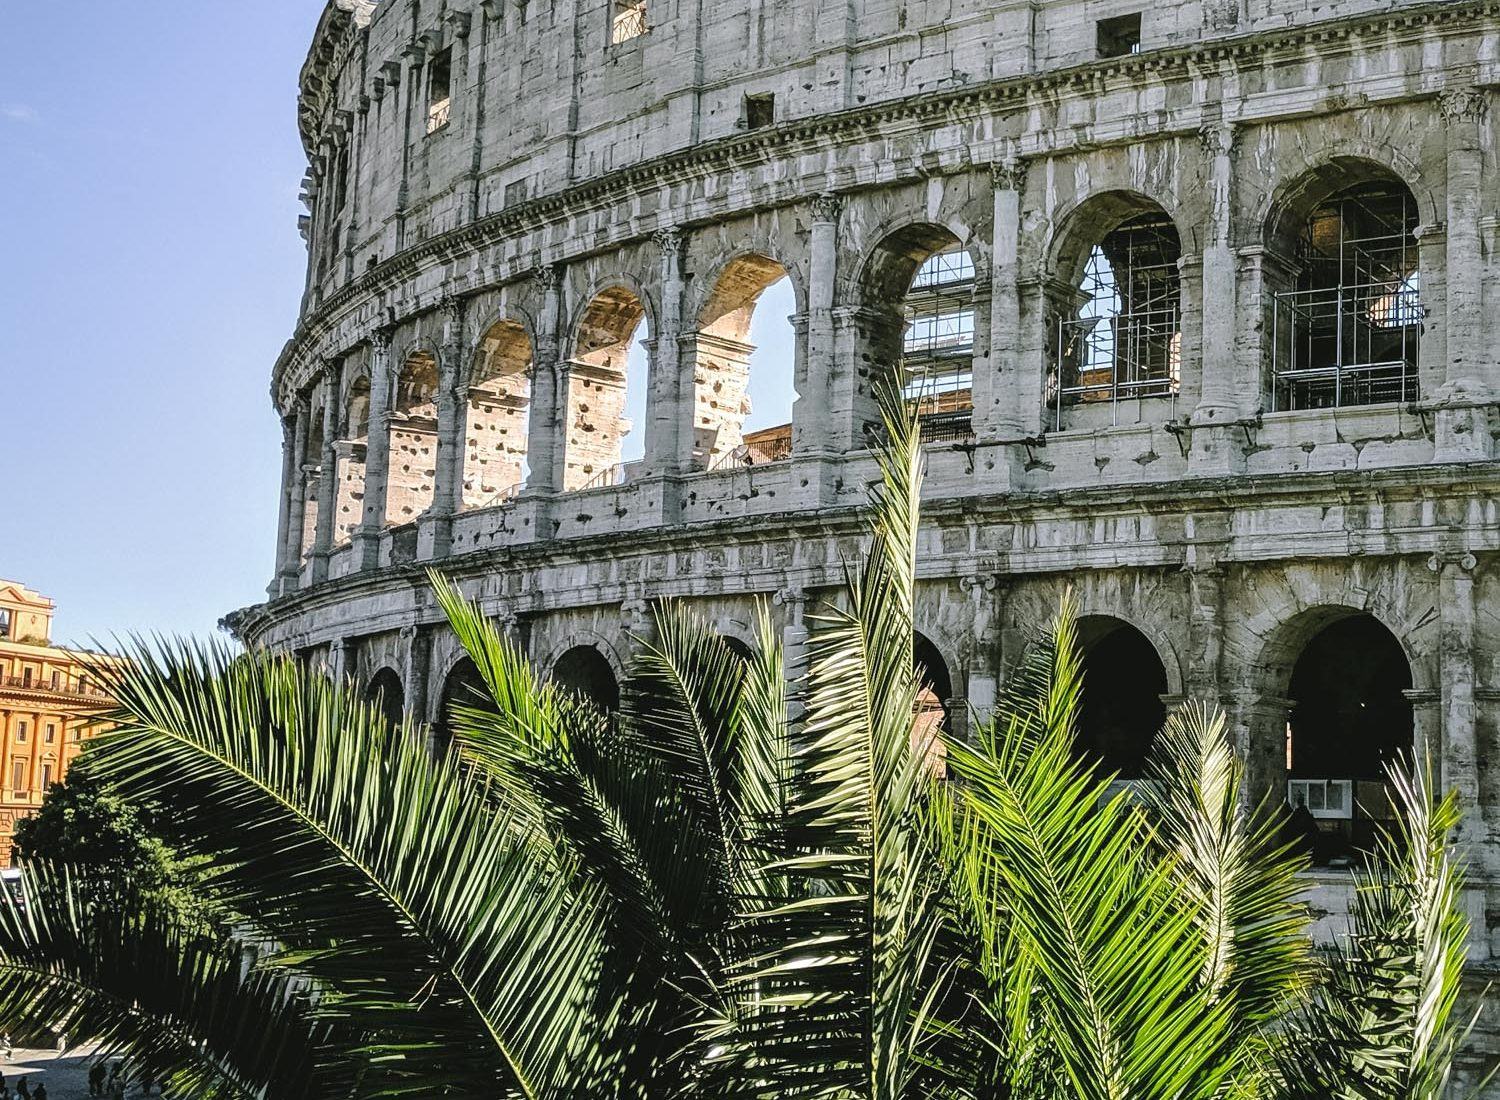 Rome travel guide: where to stay & must-see sights